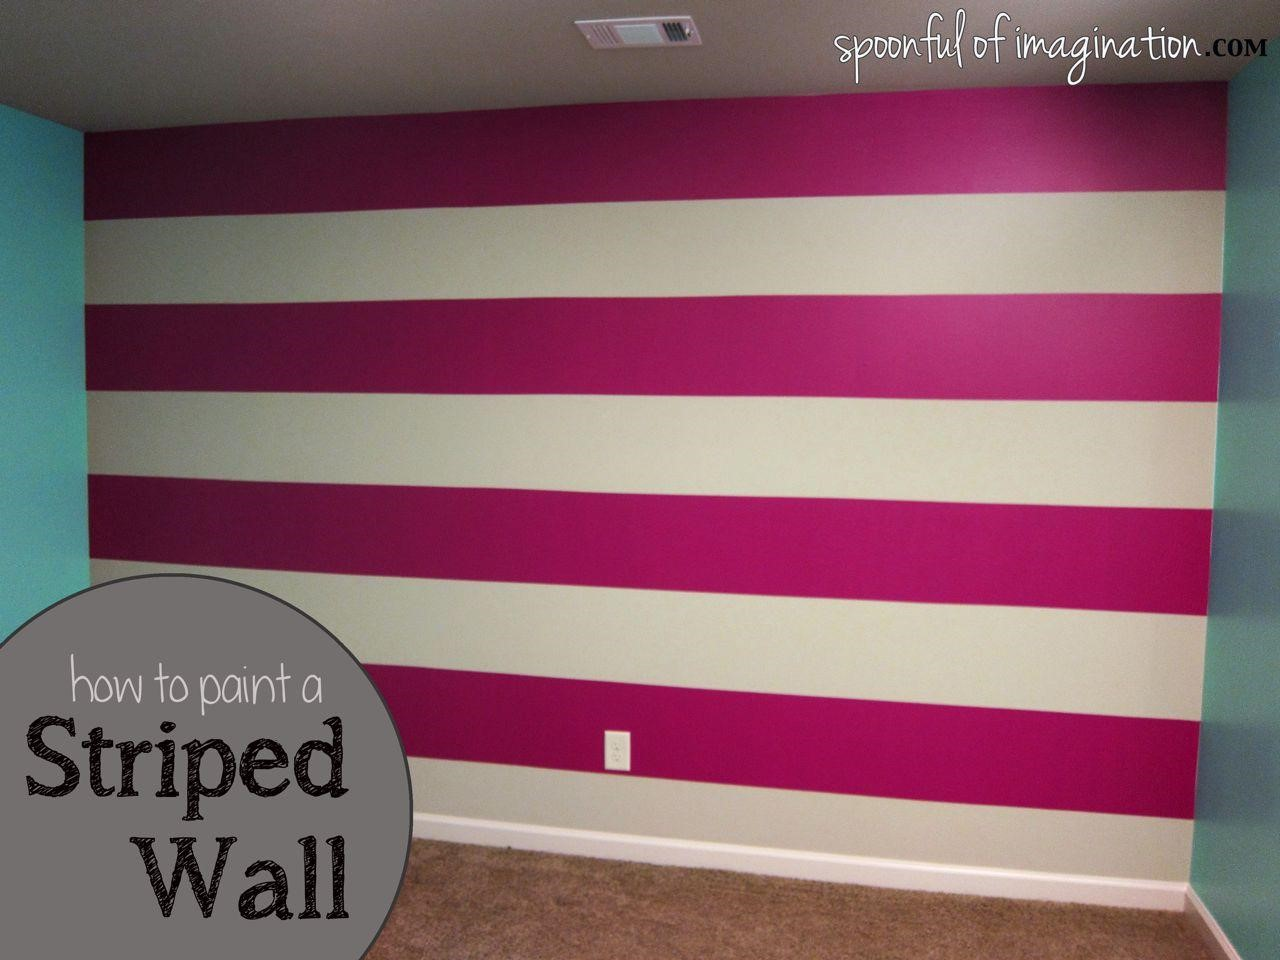 101 diy wall art ideas for your home the canvas prints. Black Bedroom Furniture Sets. Home Design Ideas